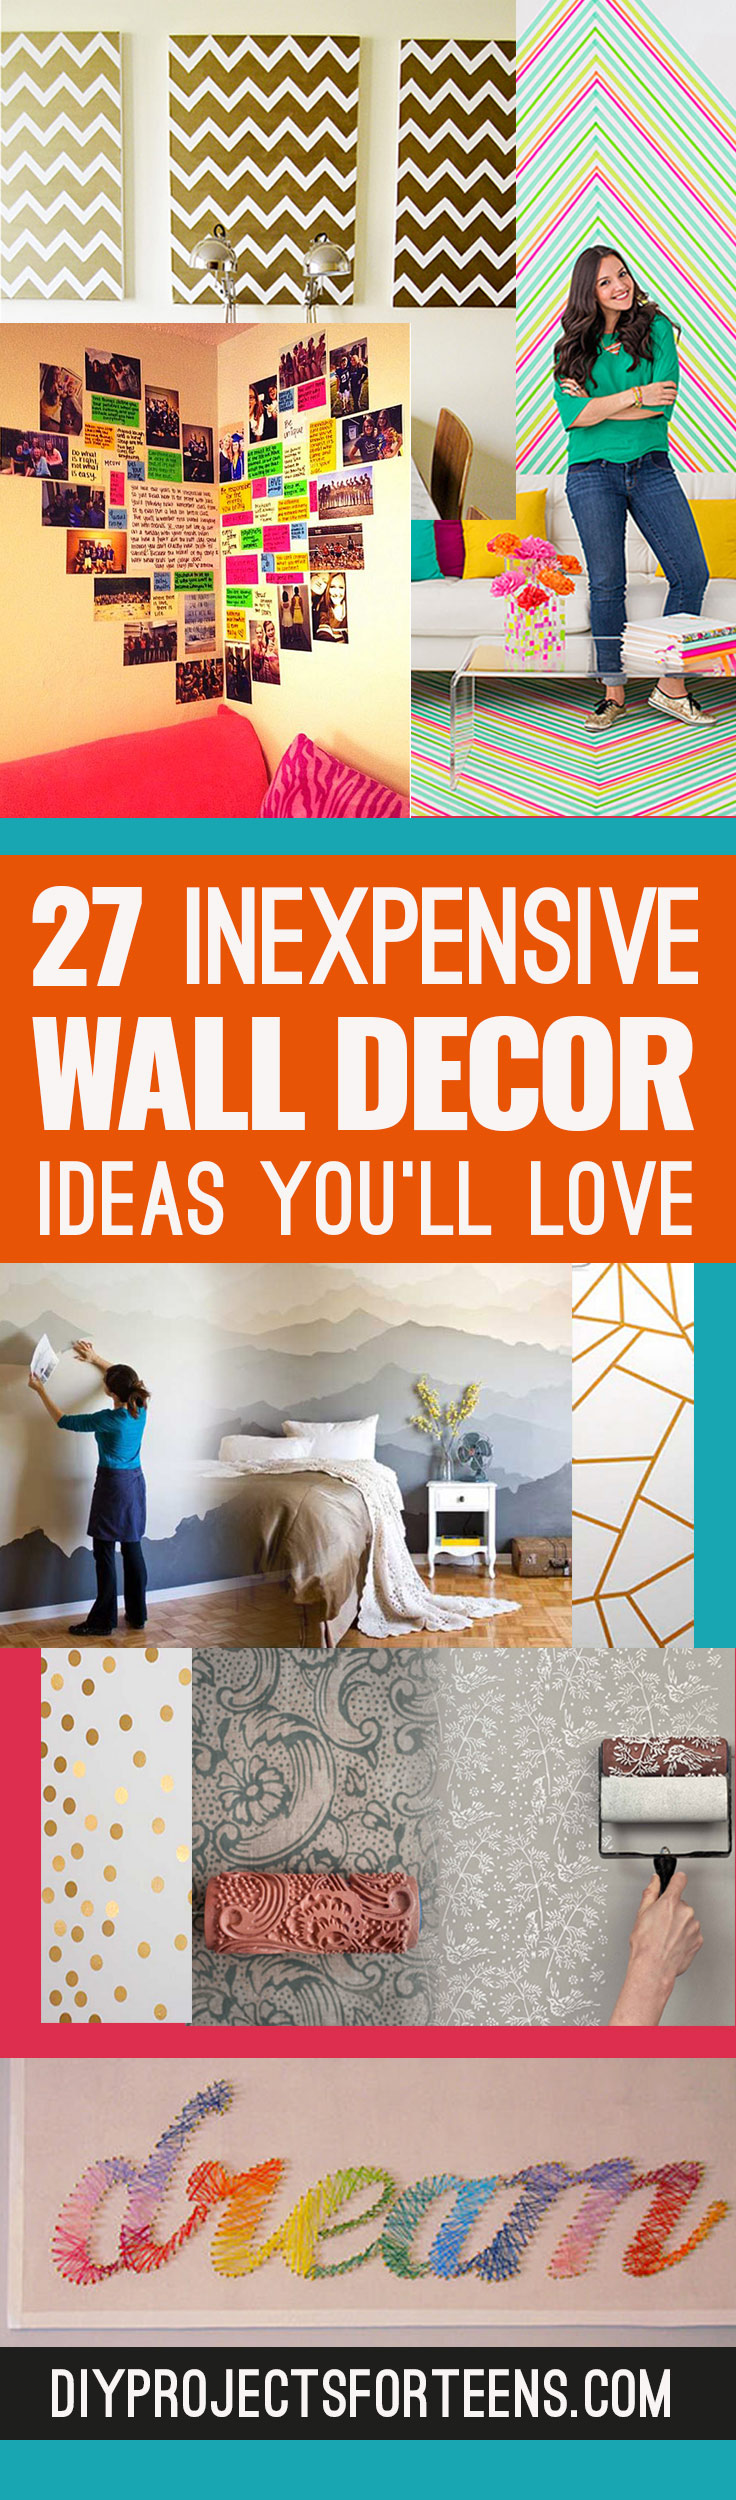 Bedroom wall decor ideas diy - Insanely Cheap Diy Wall Art Ideas You Ll Love